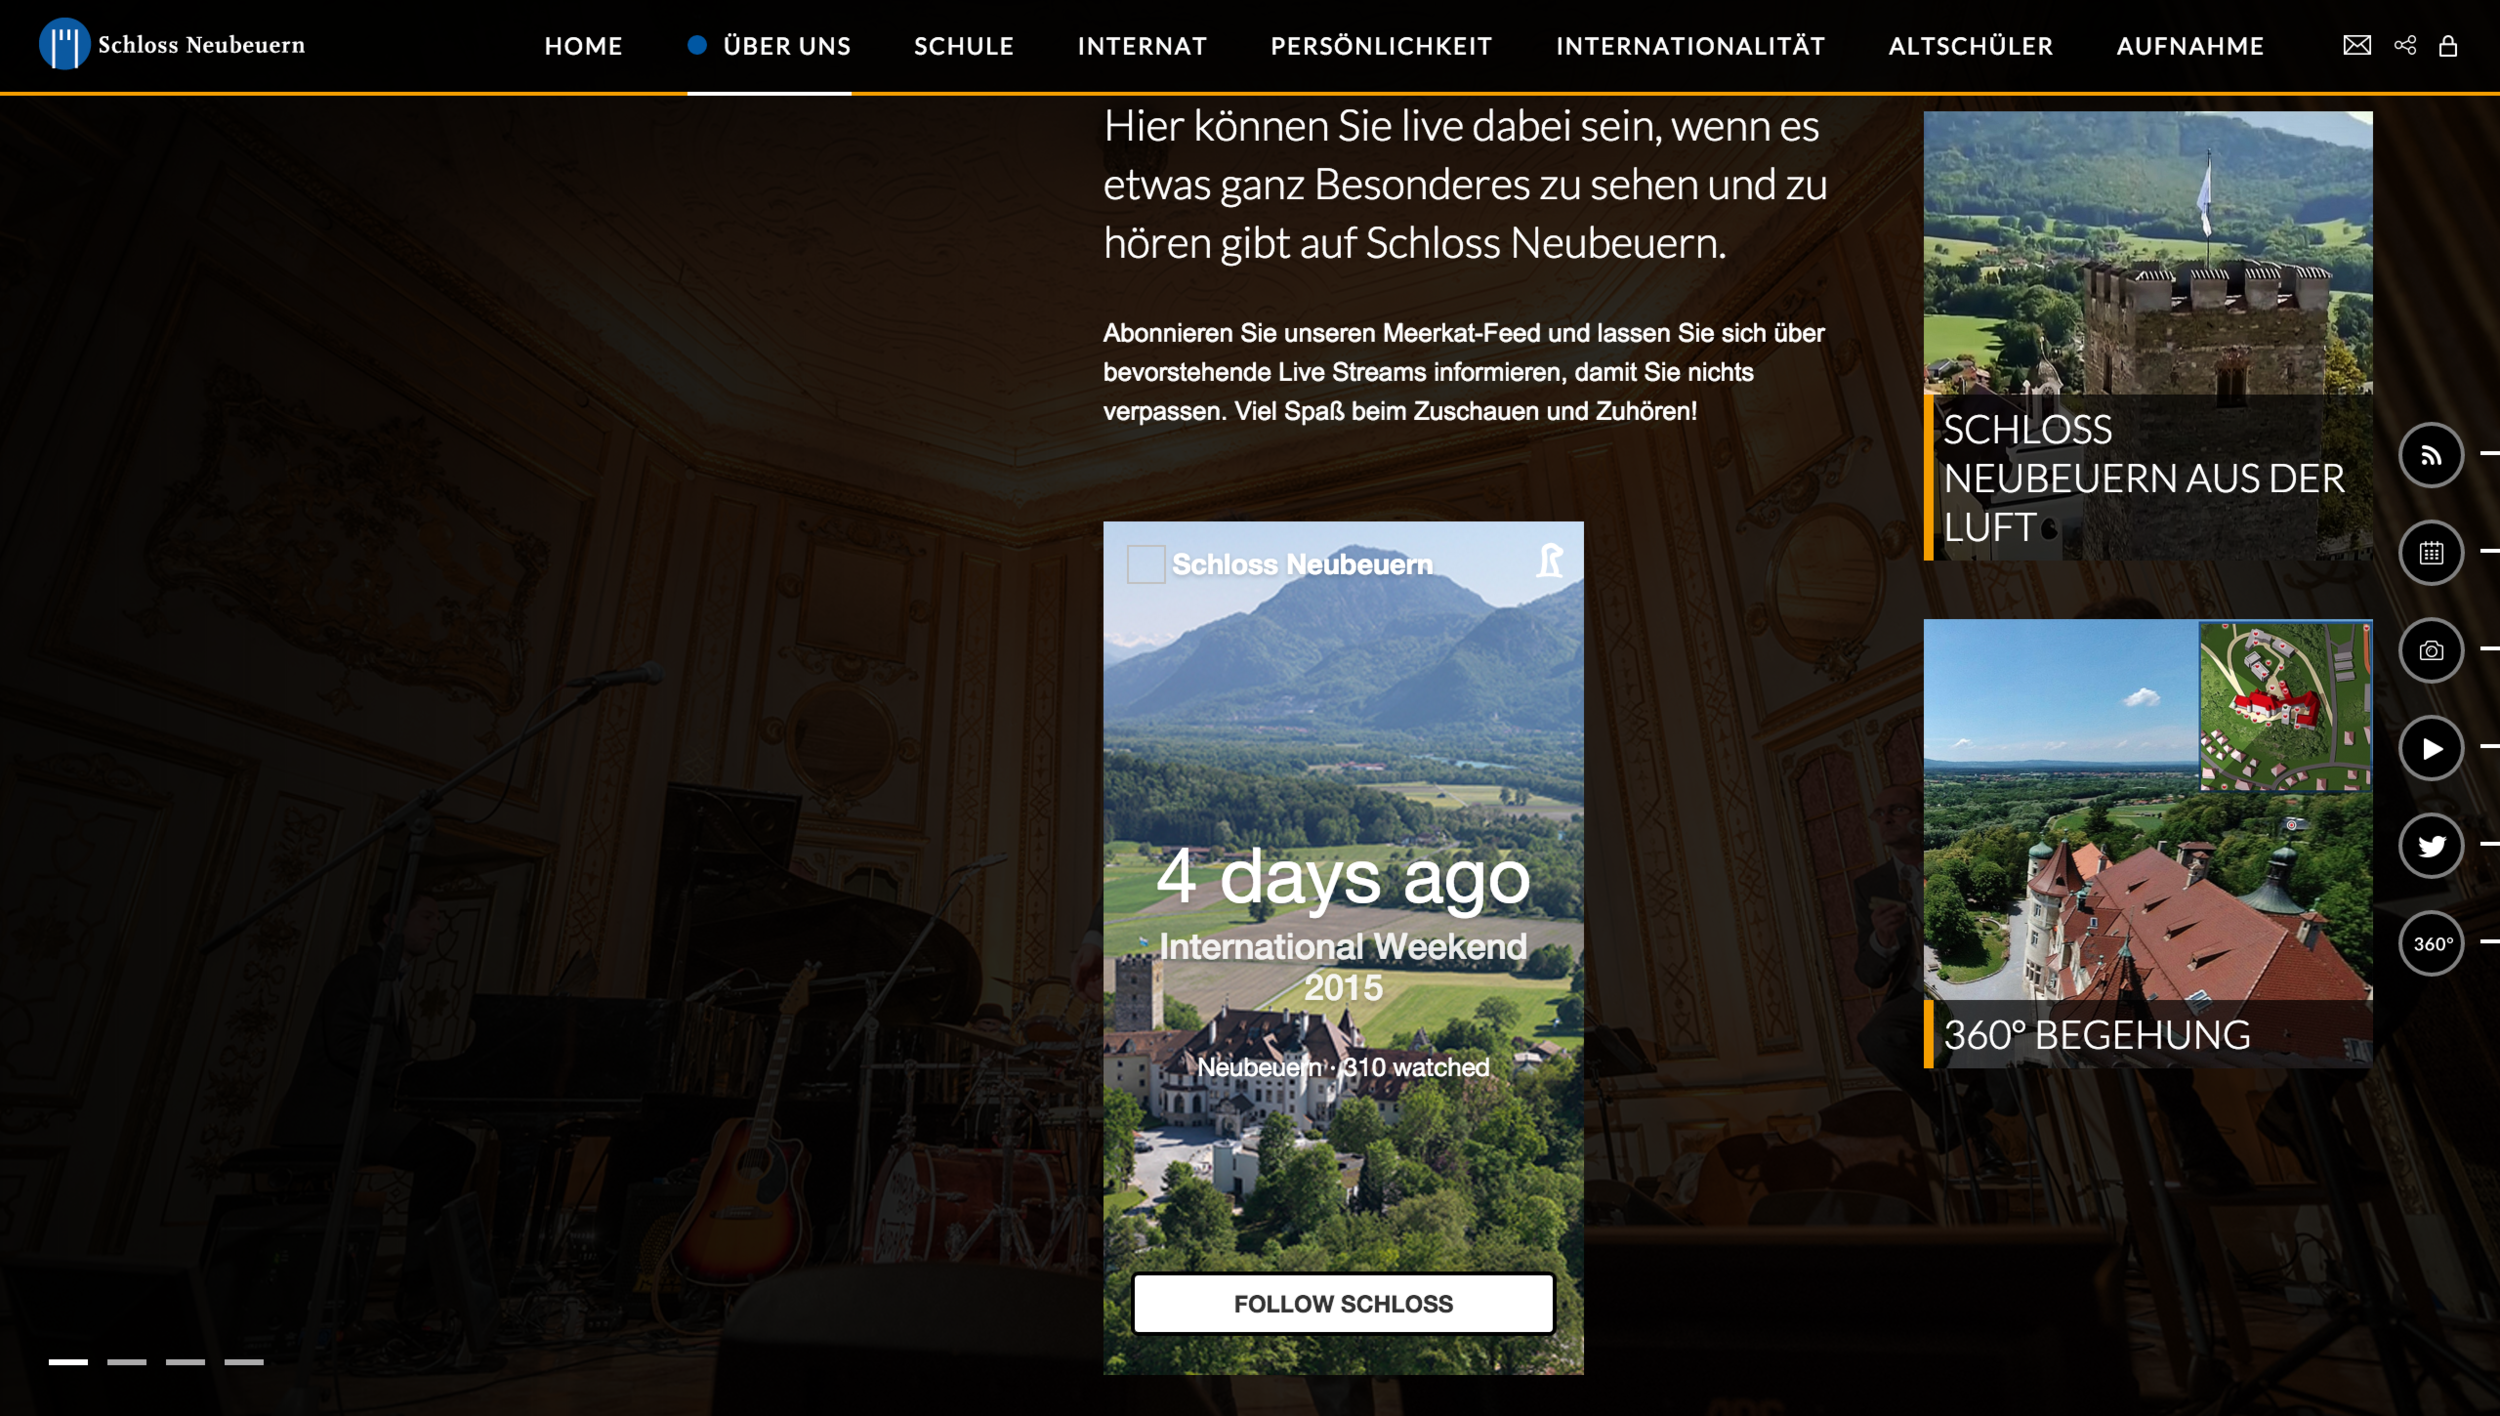 Schloss Neubeuern use live streaming to engage with parent, prospects and their international community.